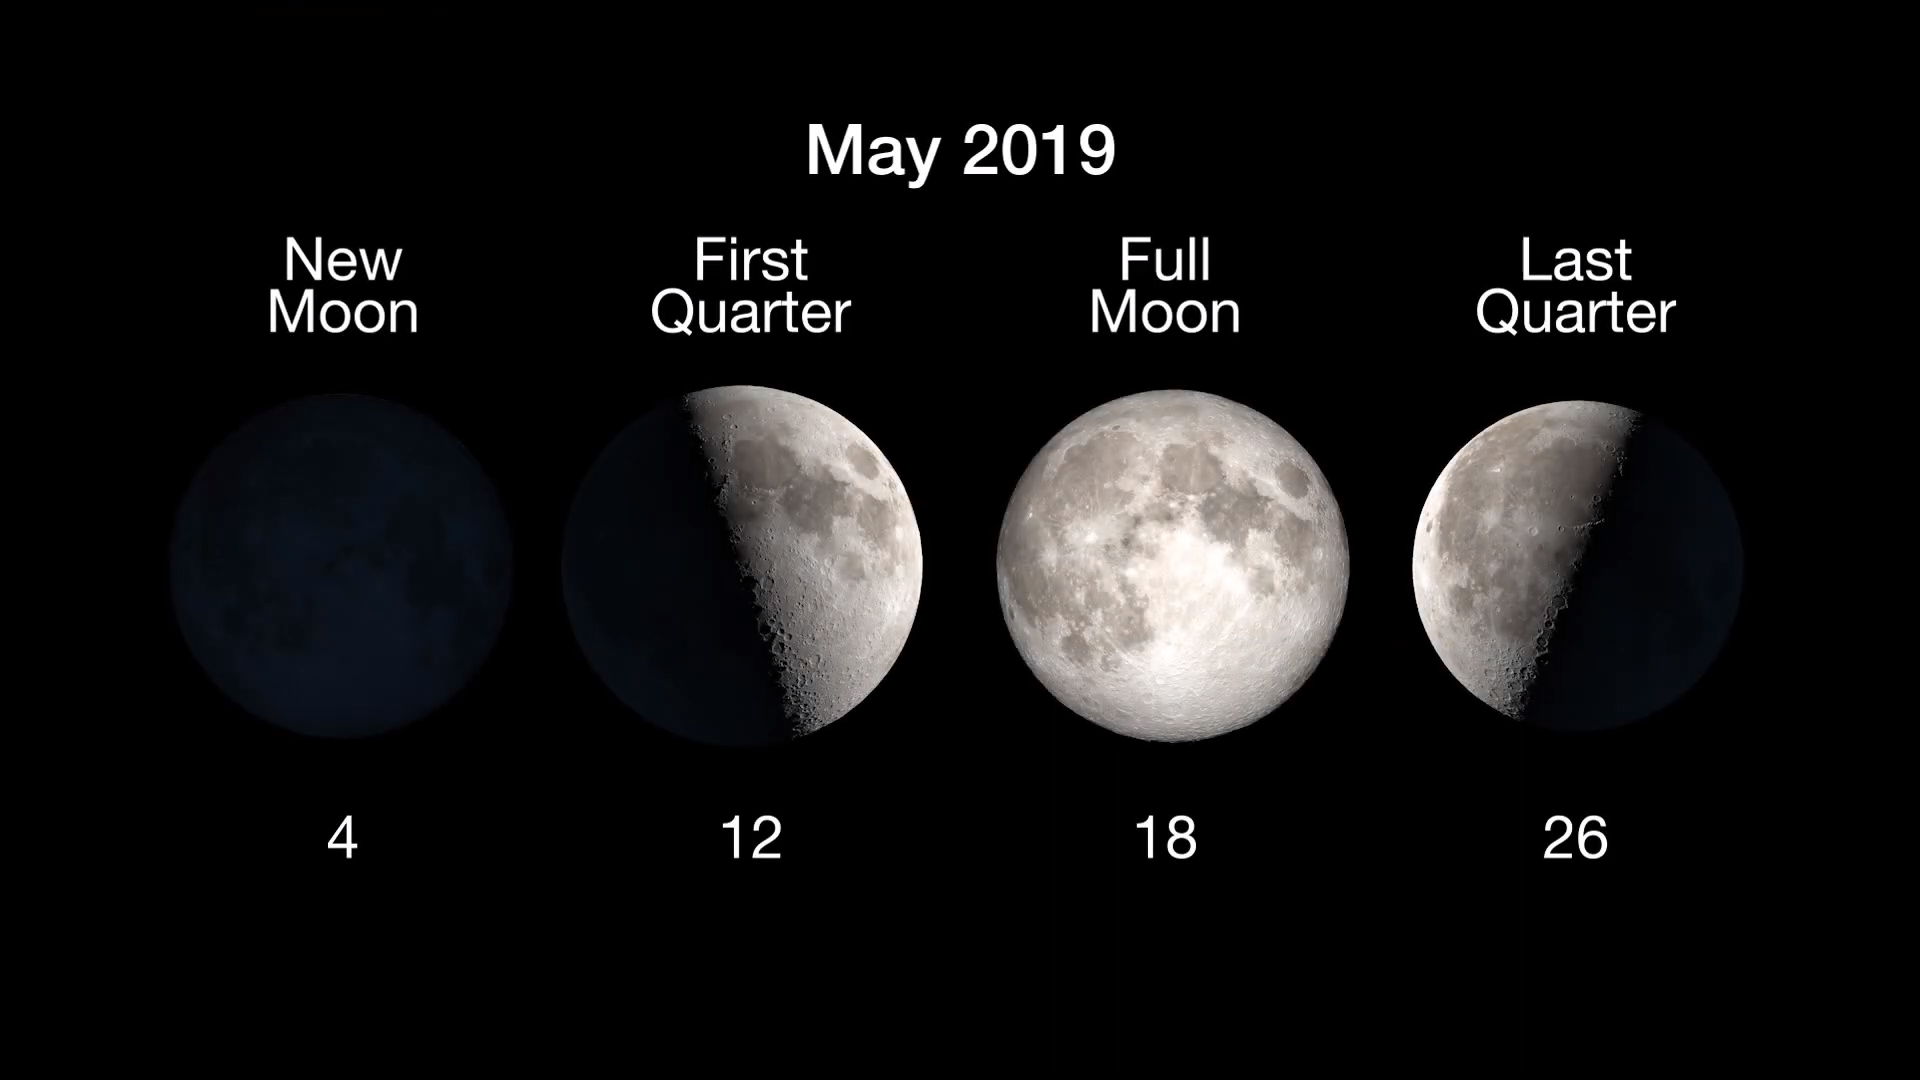 Moon Phases: New, May 4; First Quarter, May 12; Full Moon, May 18; Last Quarter, May 25.